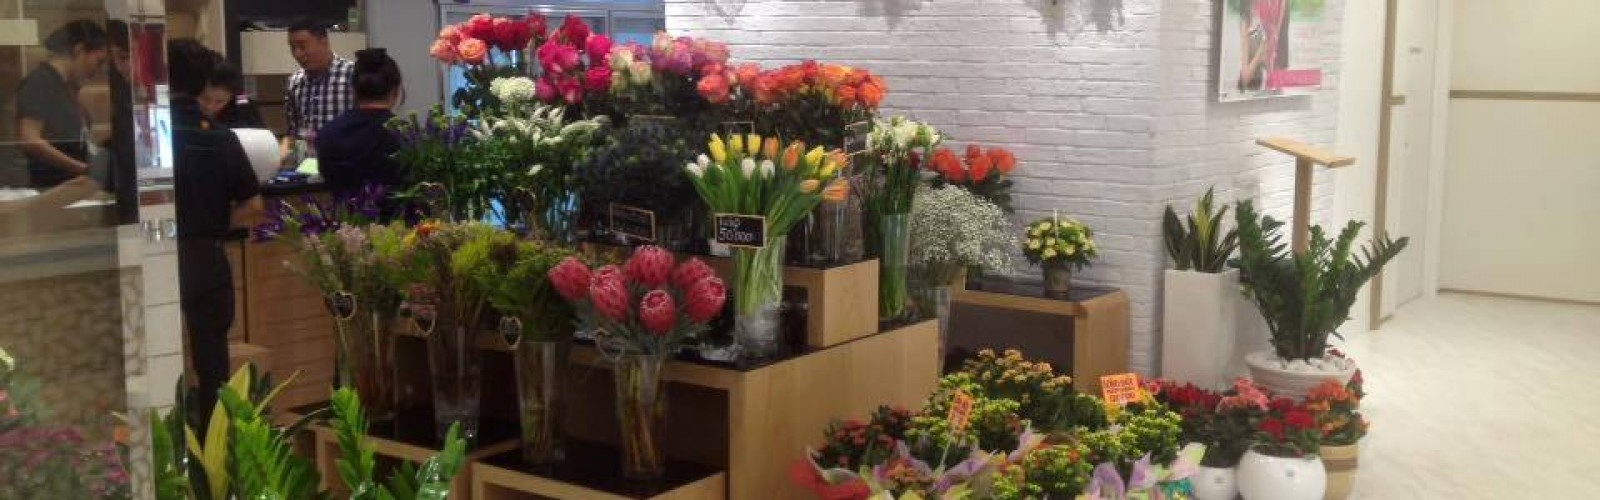 Press Release: Dalat Hasfarm opening the 9th Flower Shop at Takashimaya Commercial Center